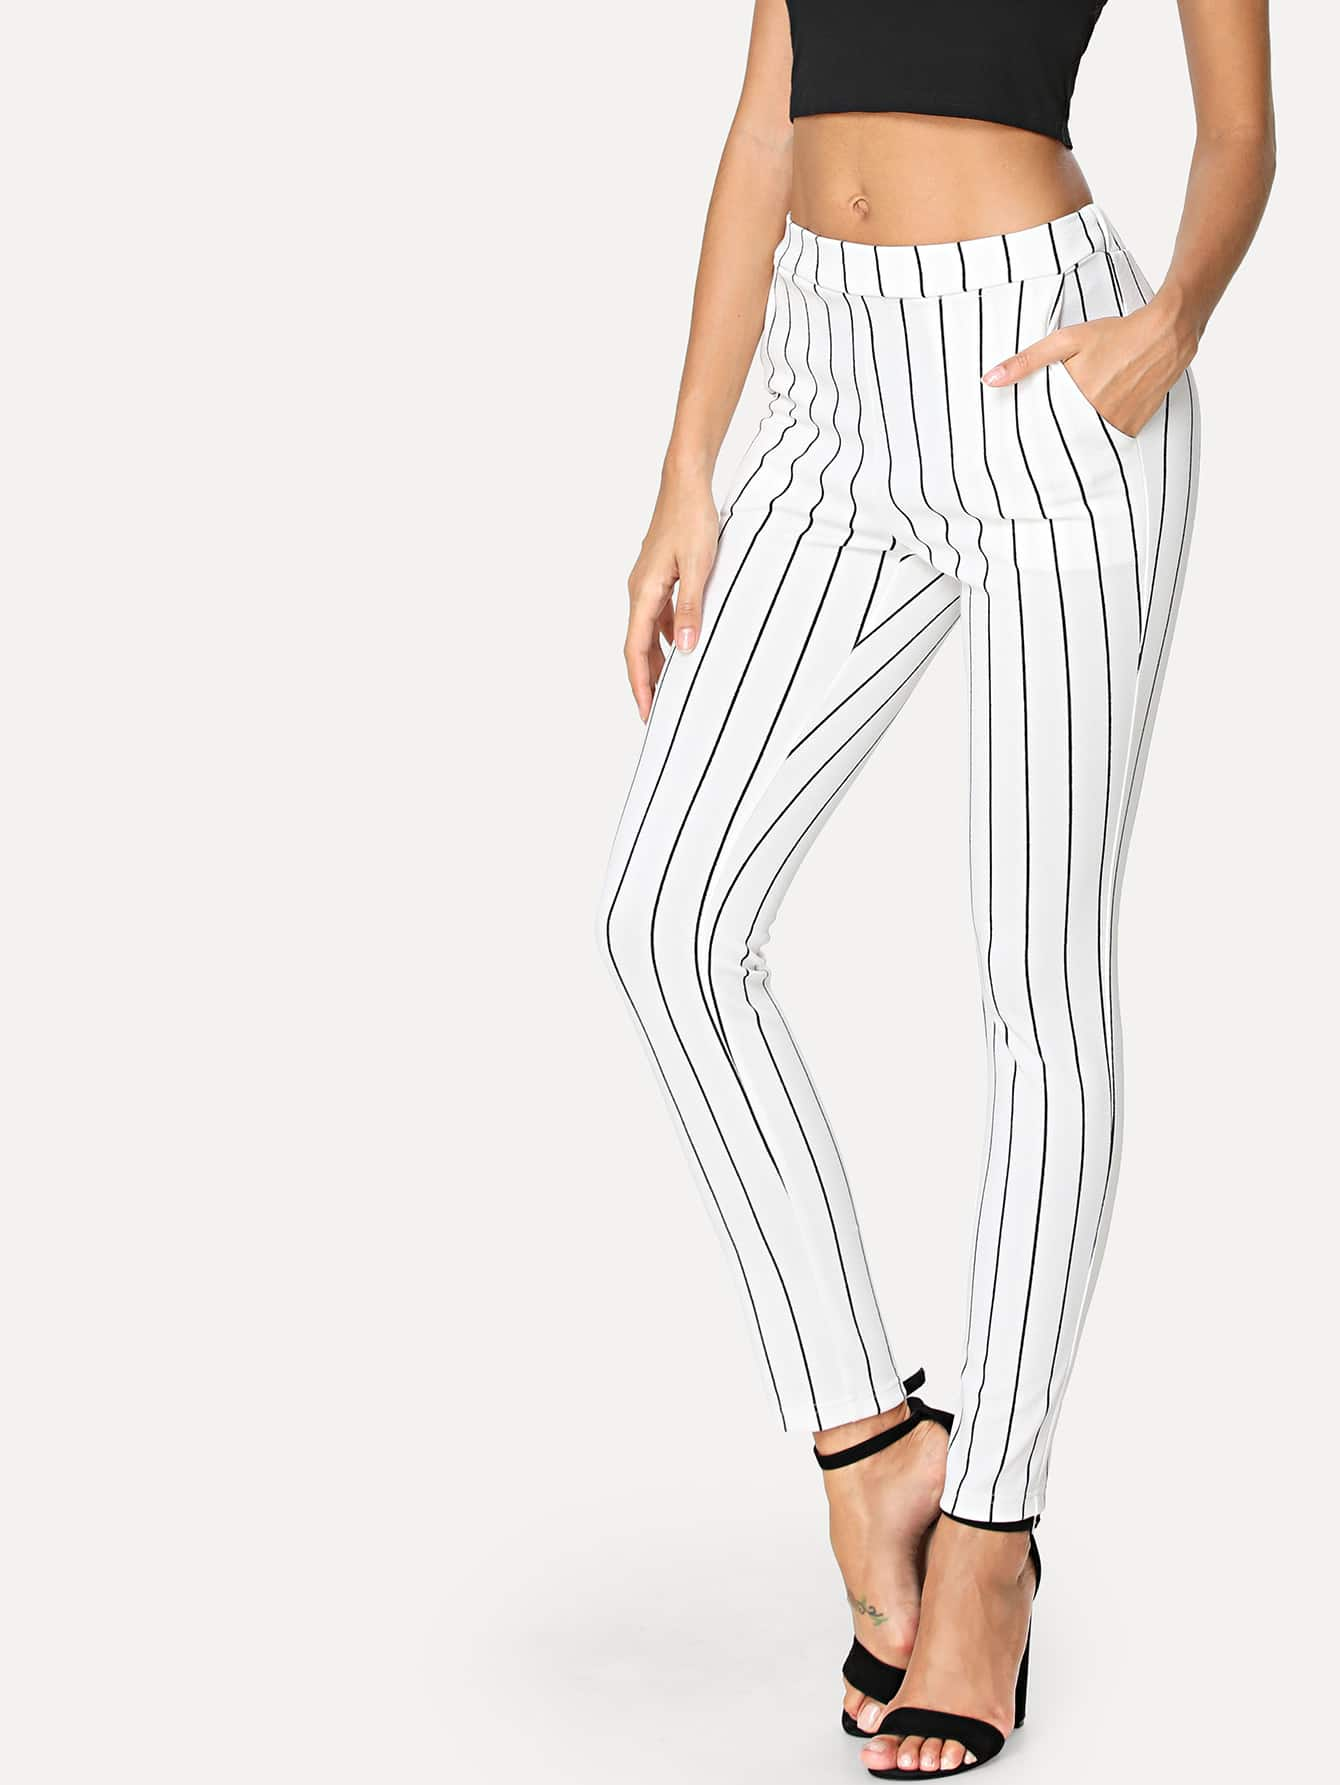 Vertical Striped Skinny Pants vertical striped pants